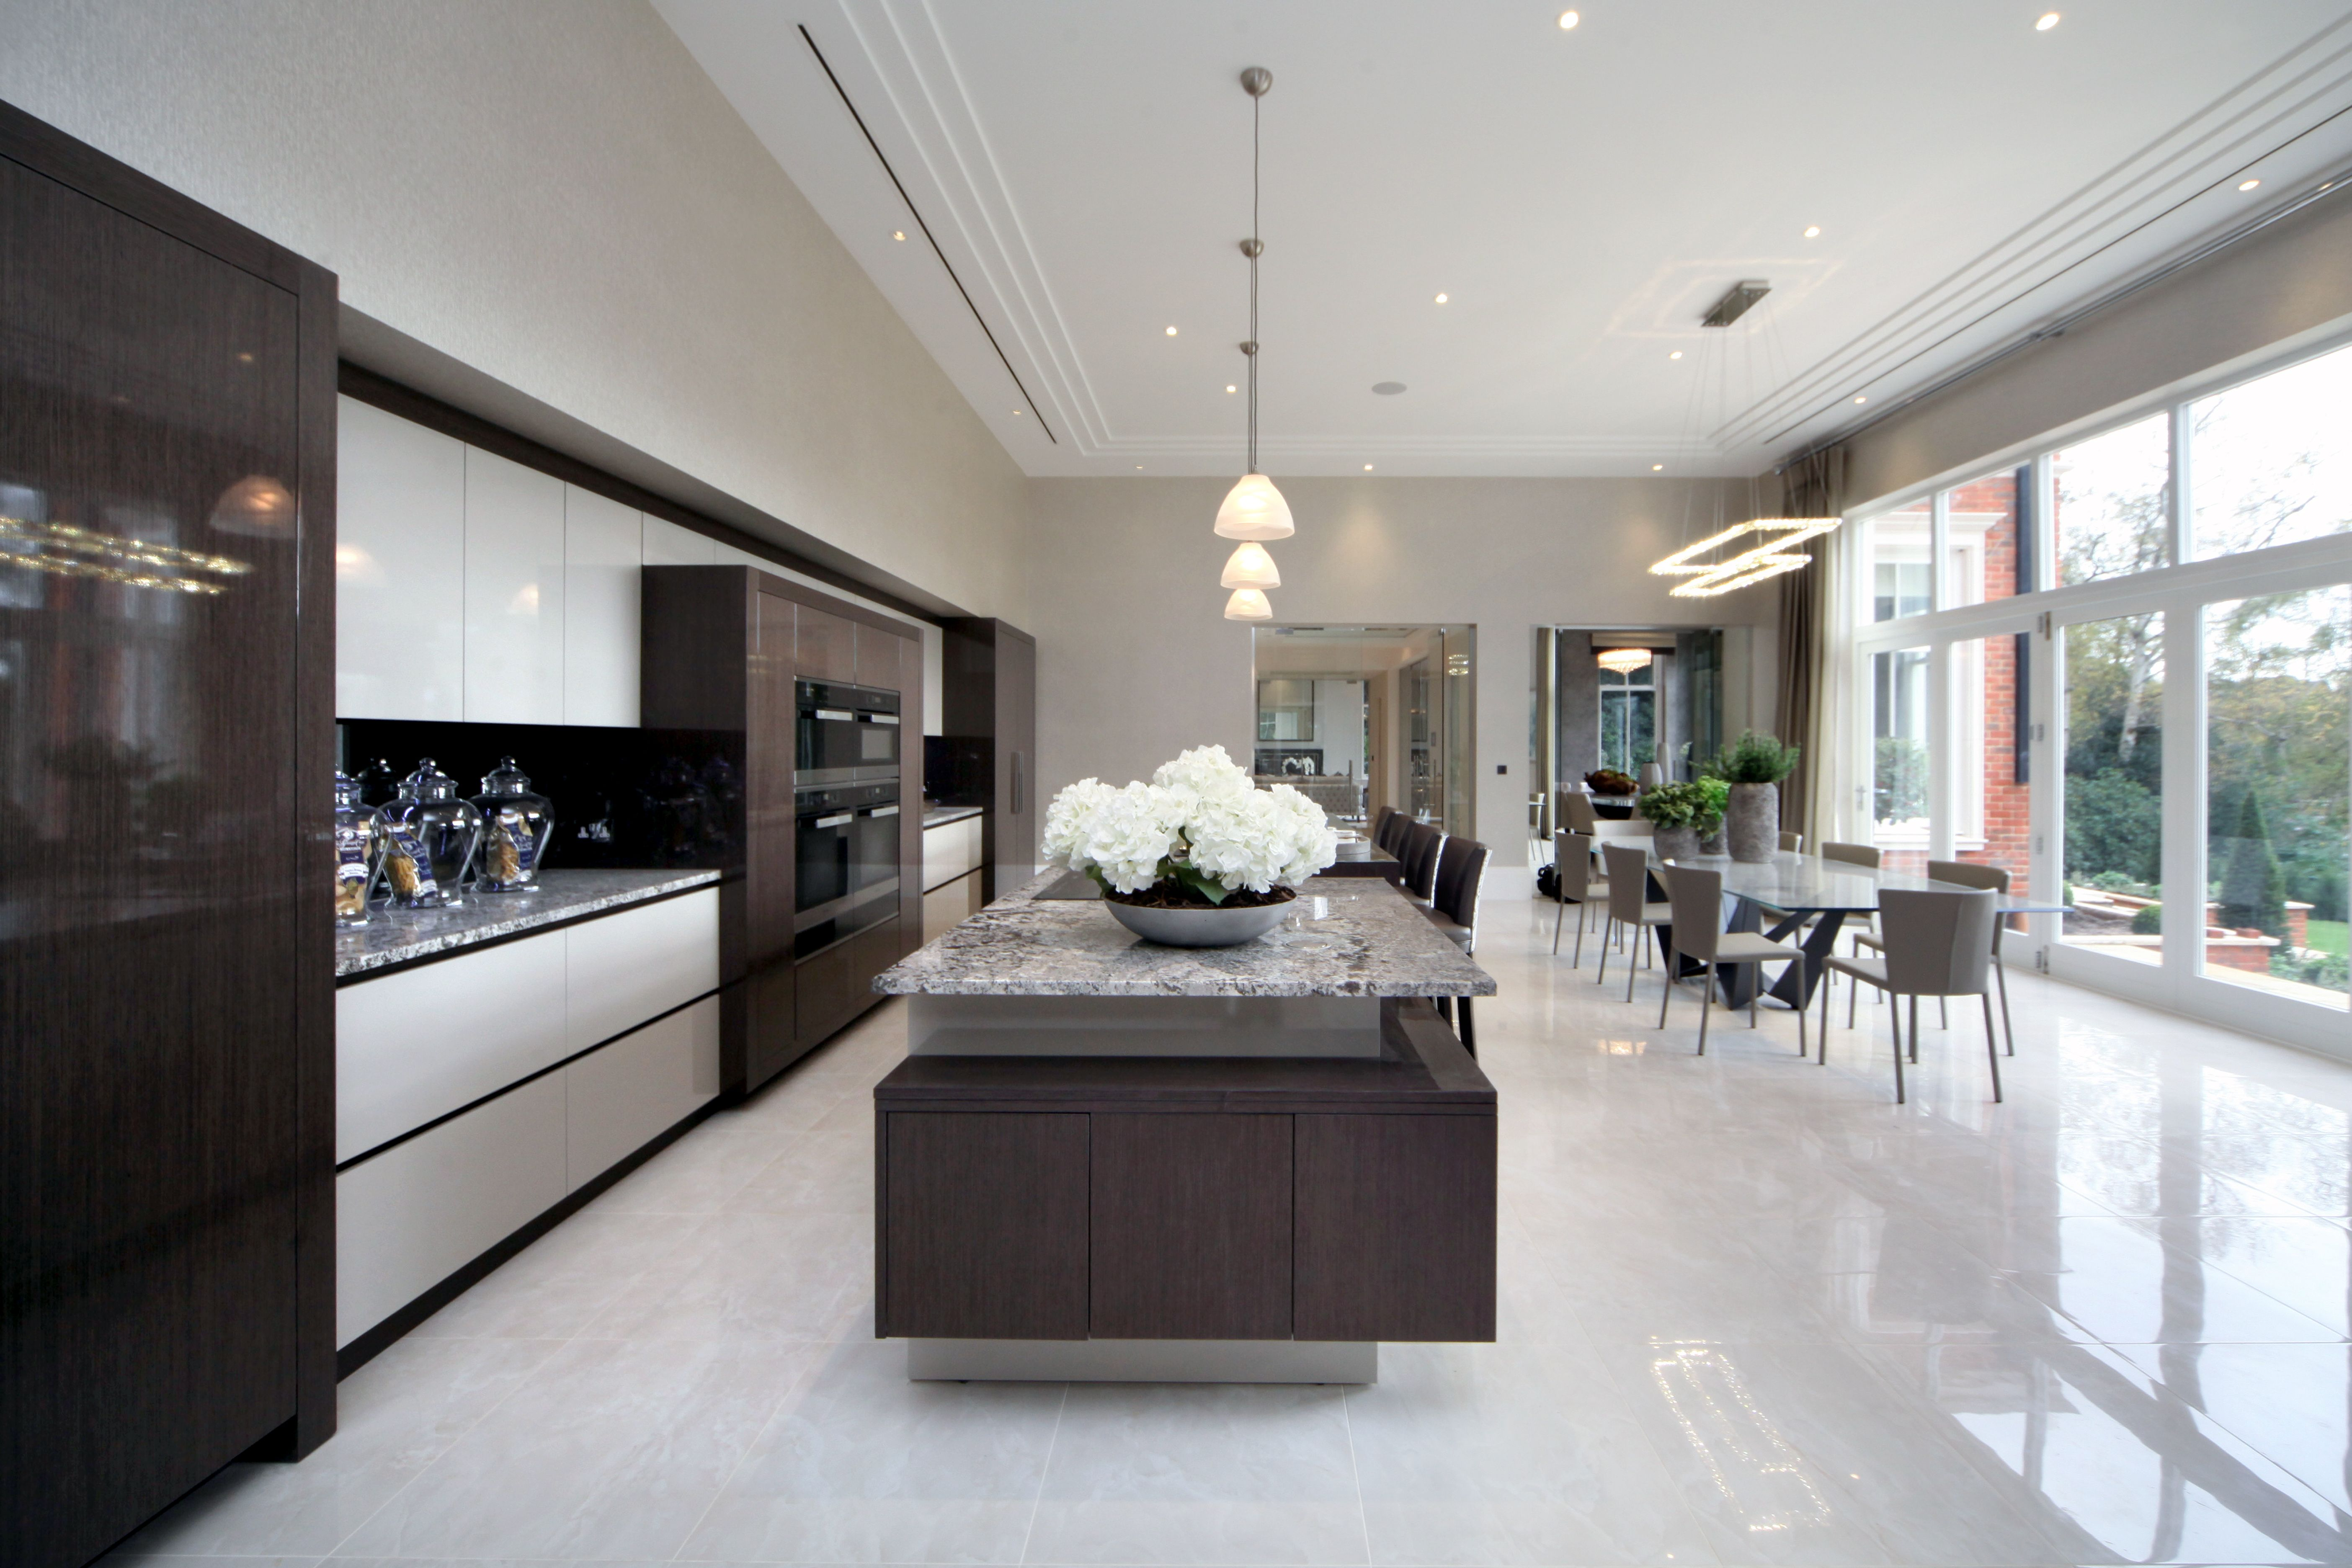 EXTREME Linear High Gloss Kitchen Design In Private Mansion